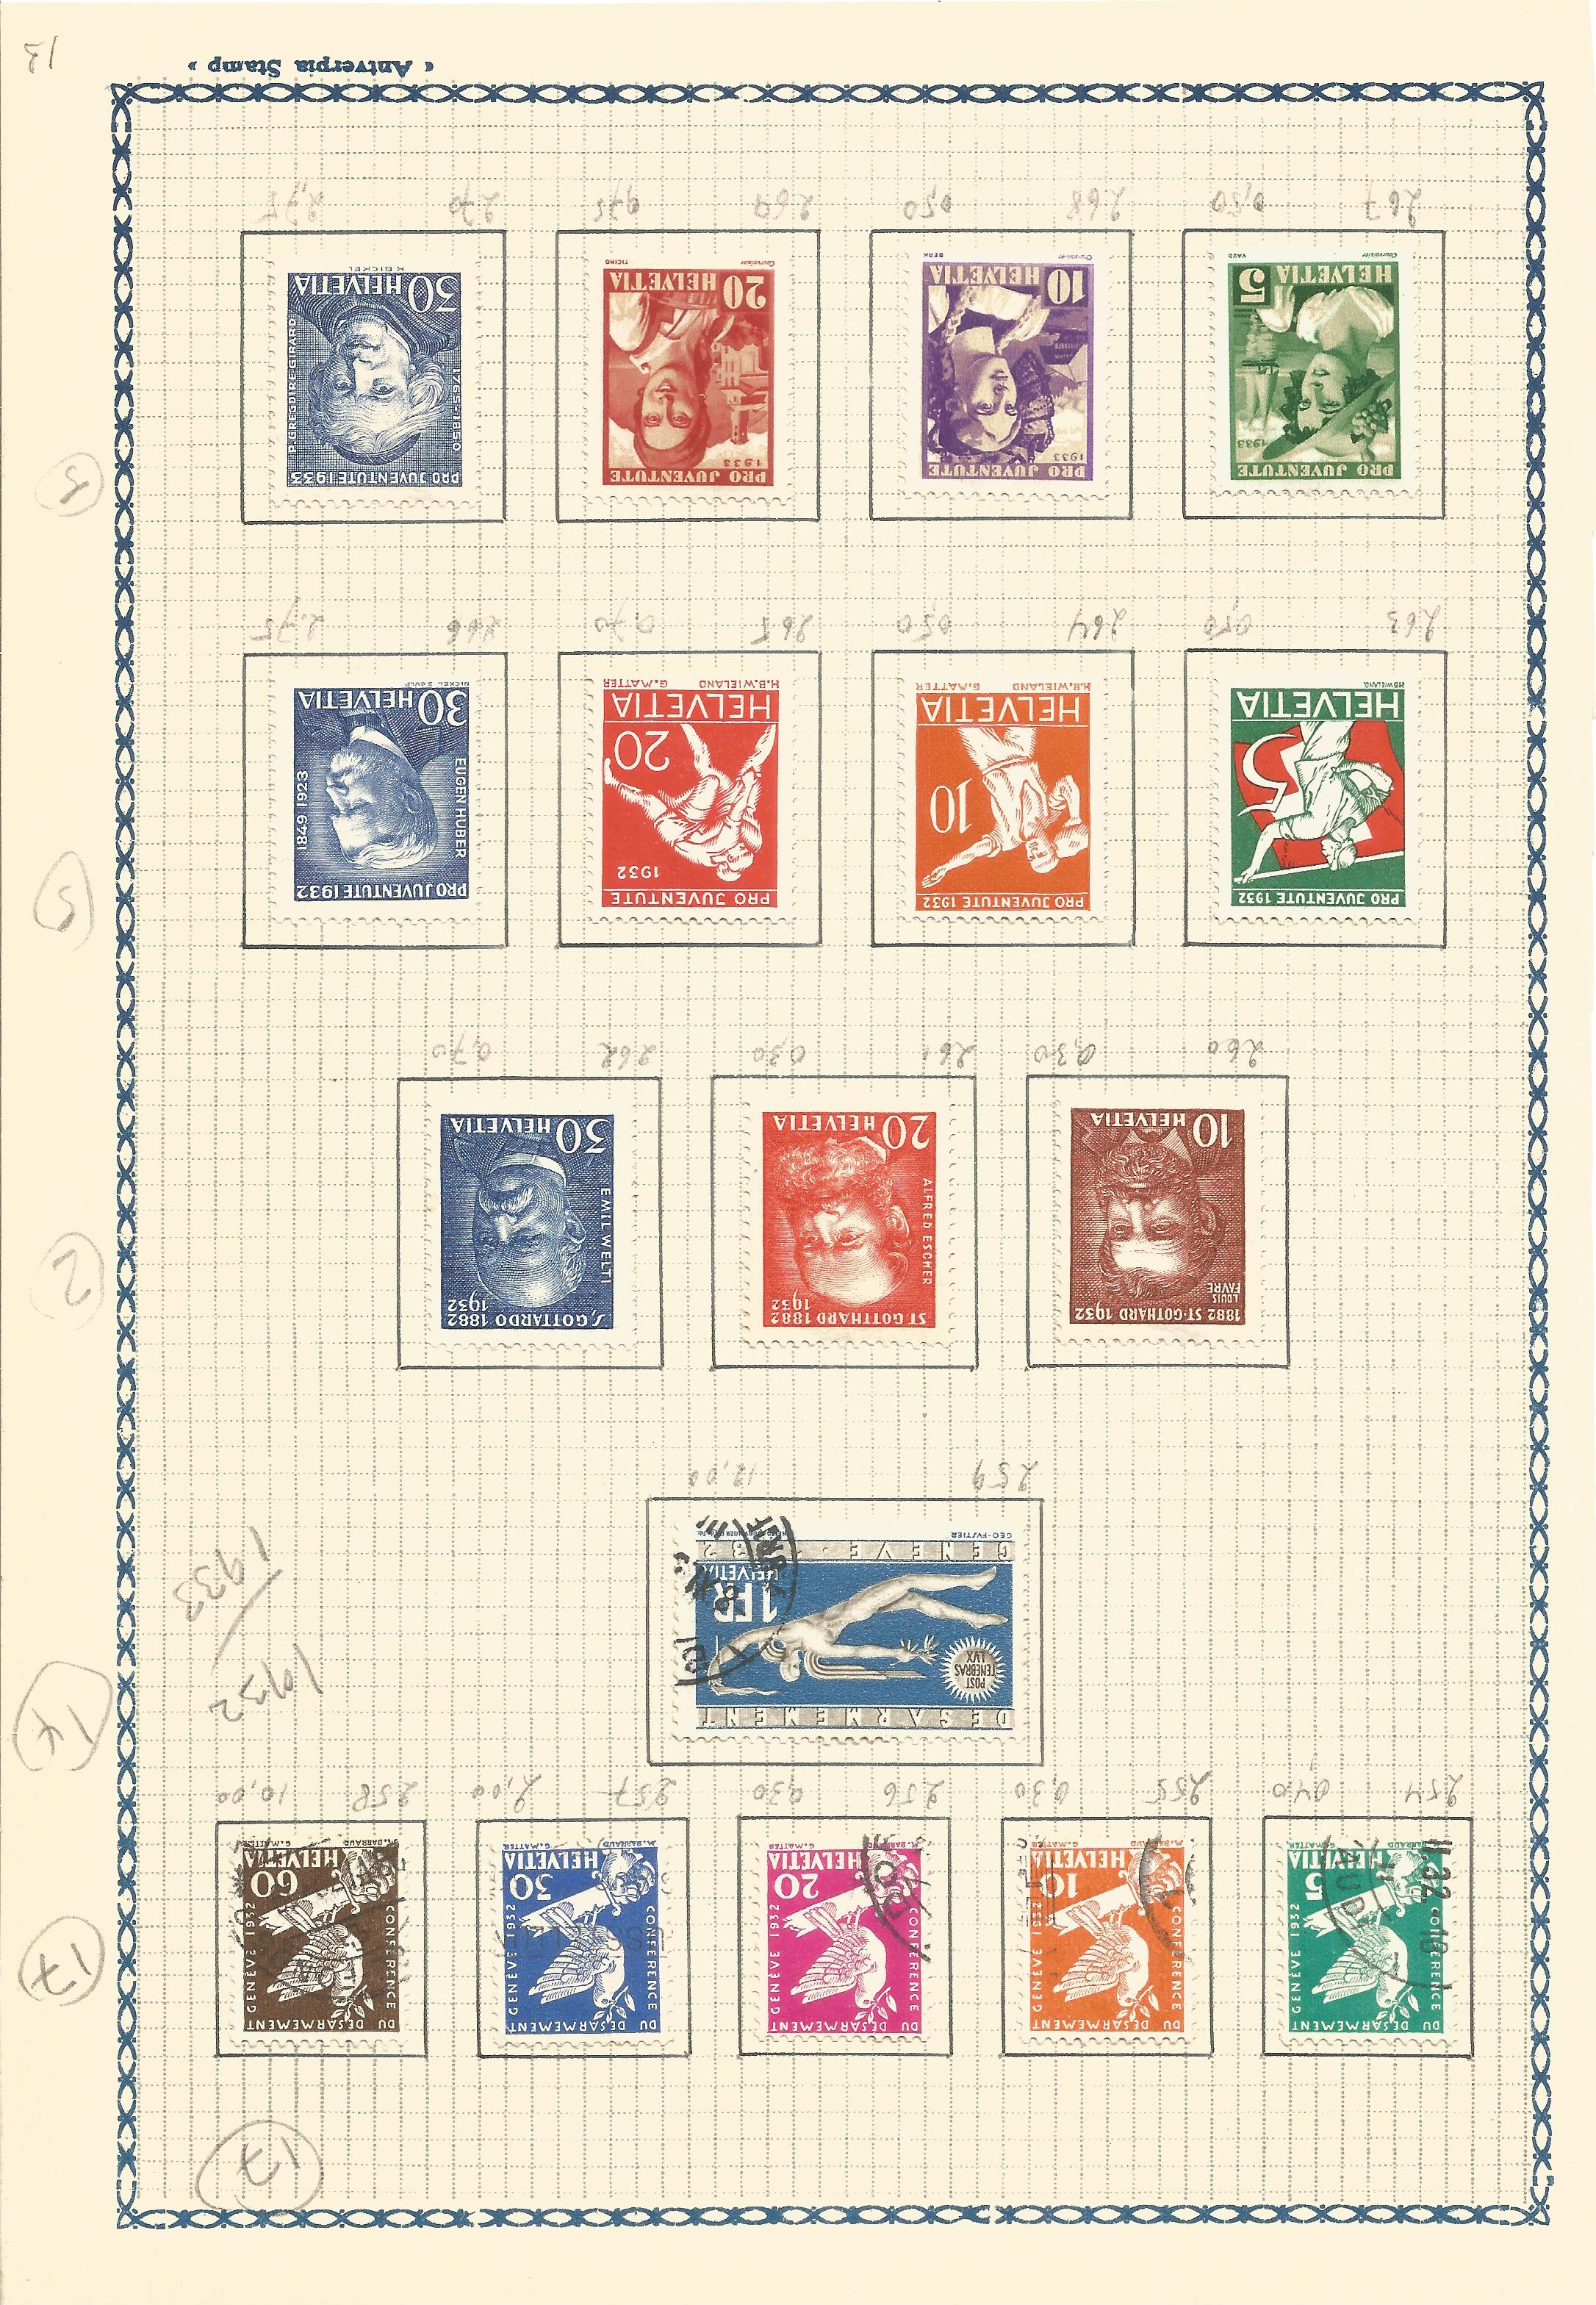 Swiss mint stamps. 17 stamps. 1932/1933. Good condition. We combine postage on multiple winning lots